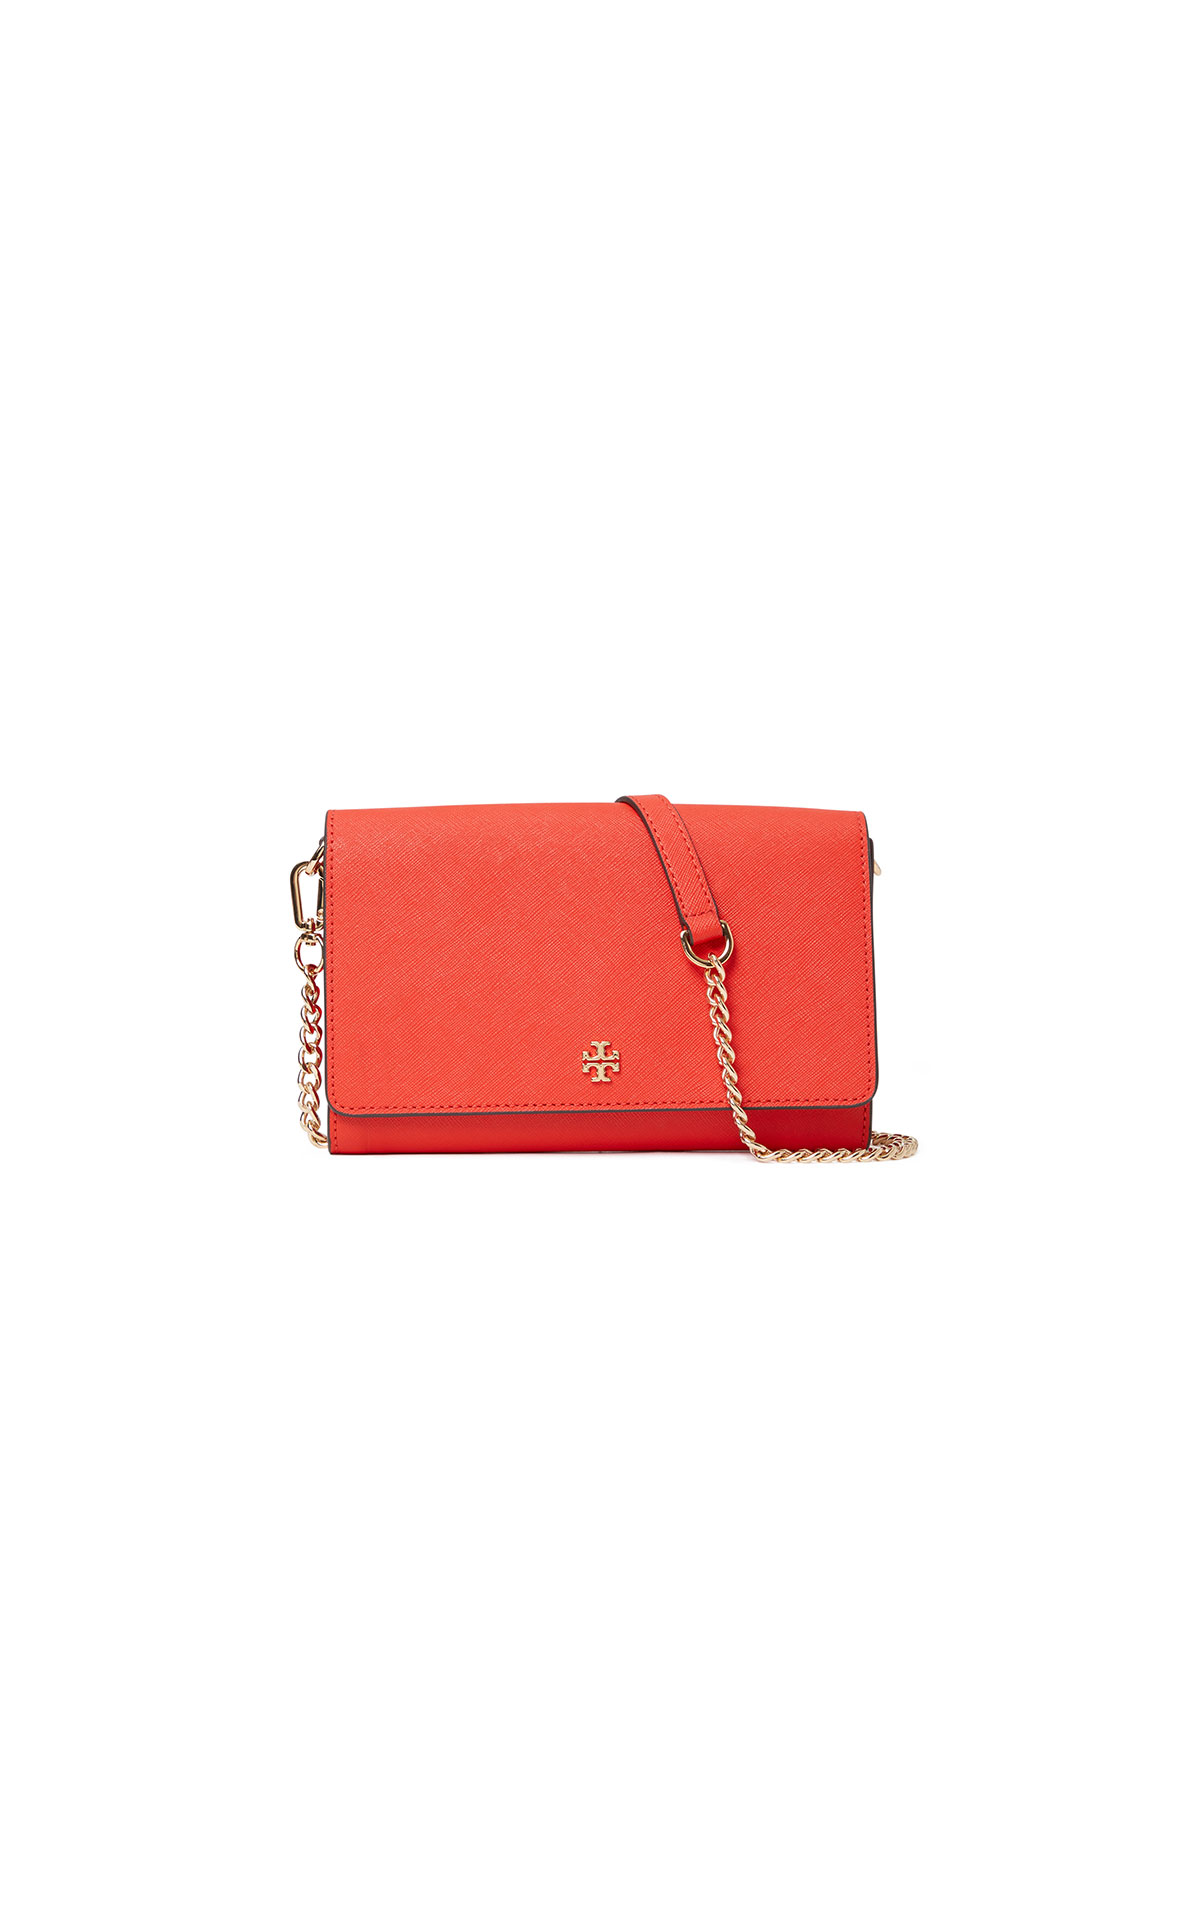 Tory Burch Emerson Chain Wallet at The Bicester Village Shopping Collection